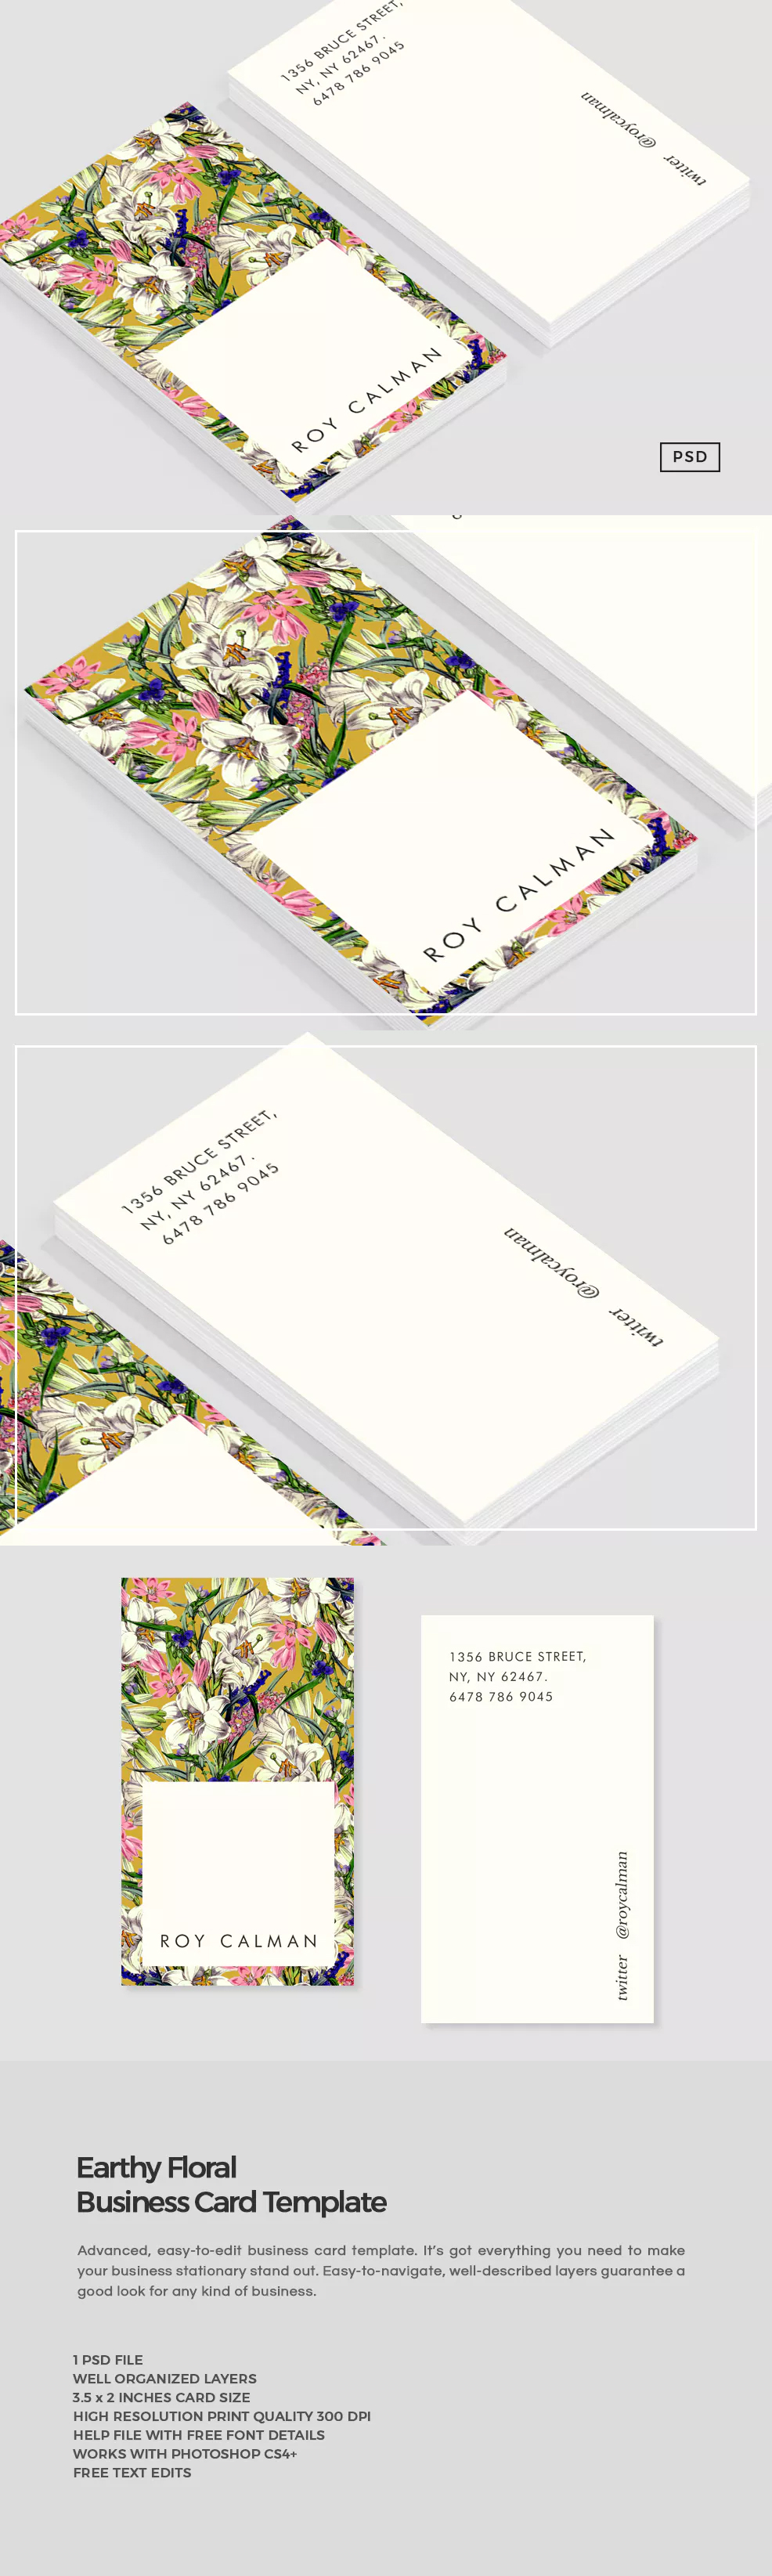 Earthy Floral Business Card Template PSD | Olive jewelry redesign ...